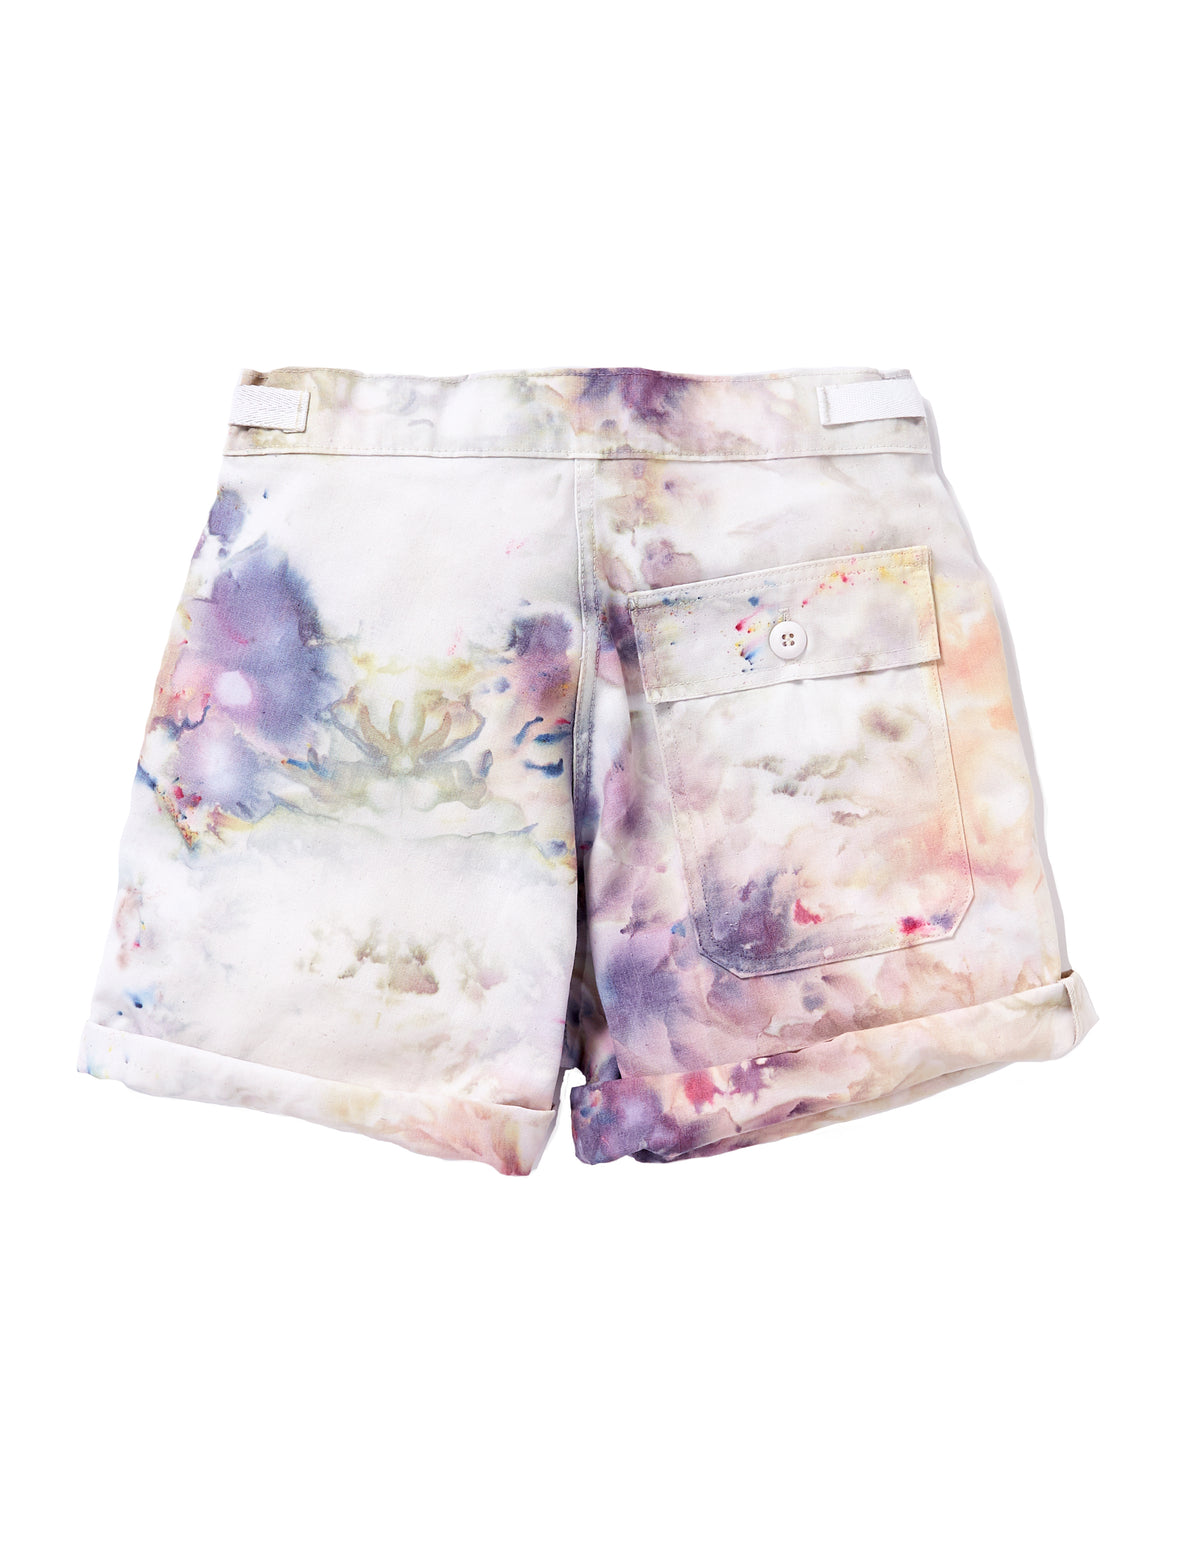 Camp Short in Pastel - riverside tool & dye